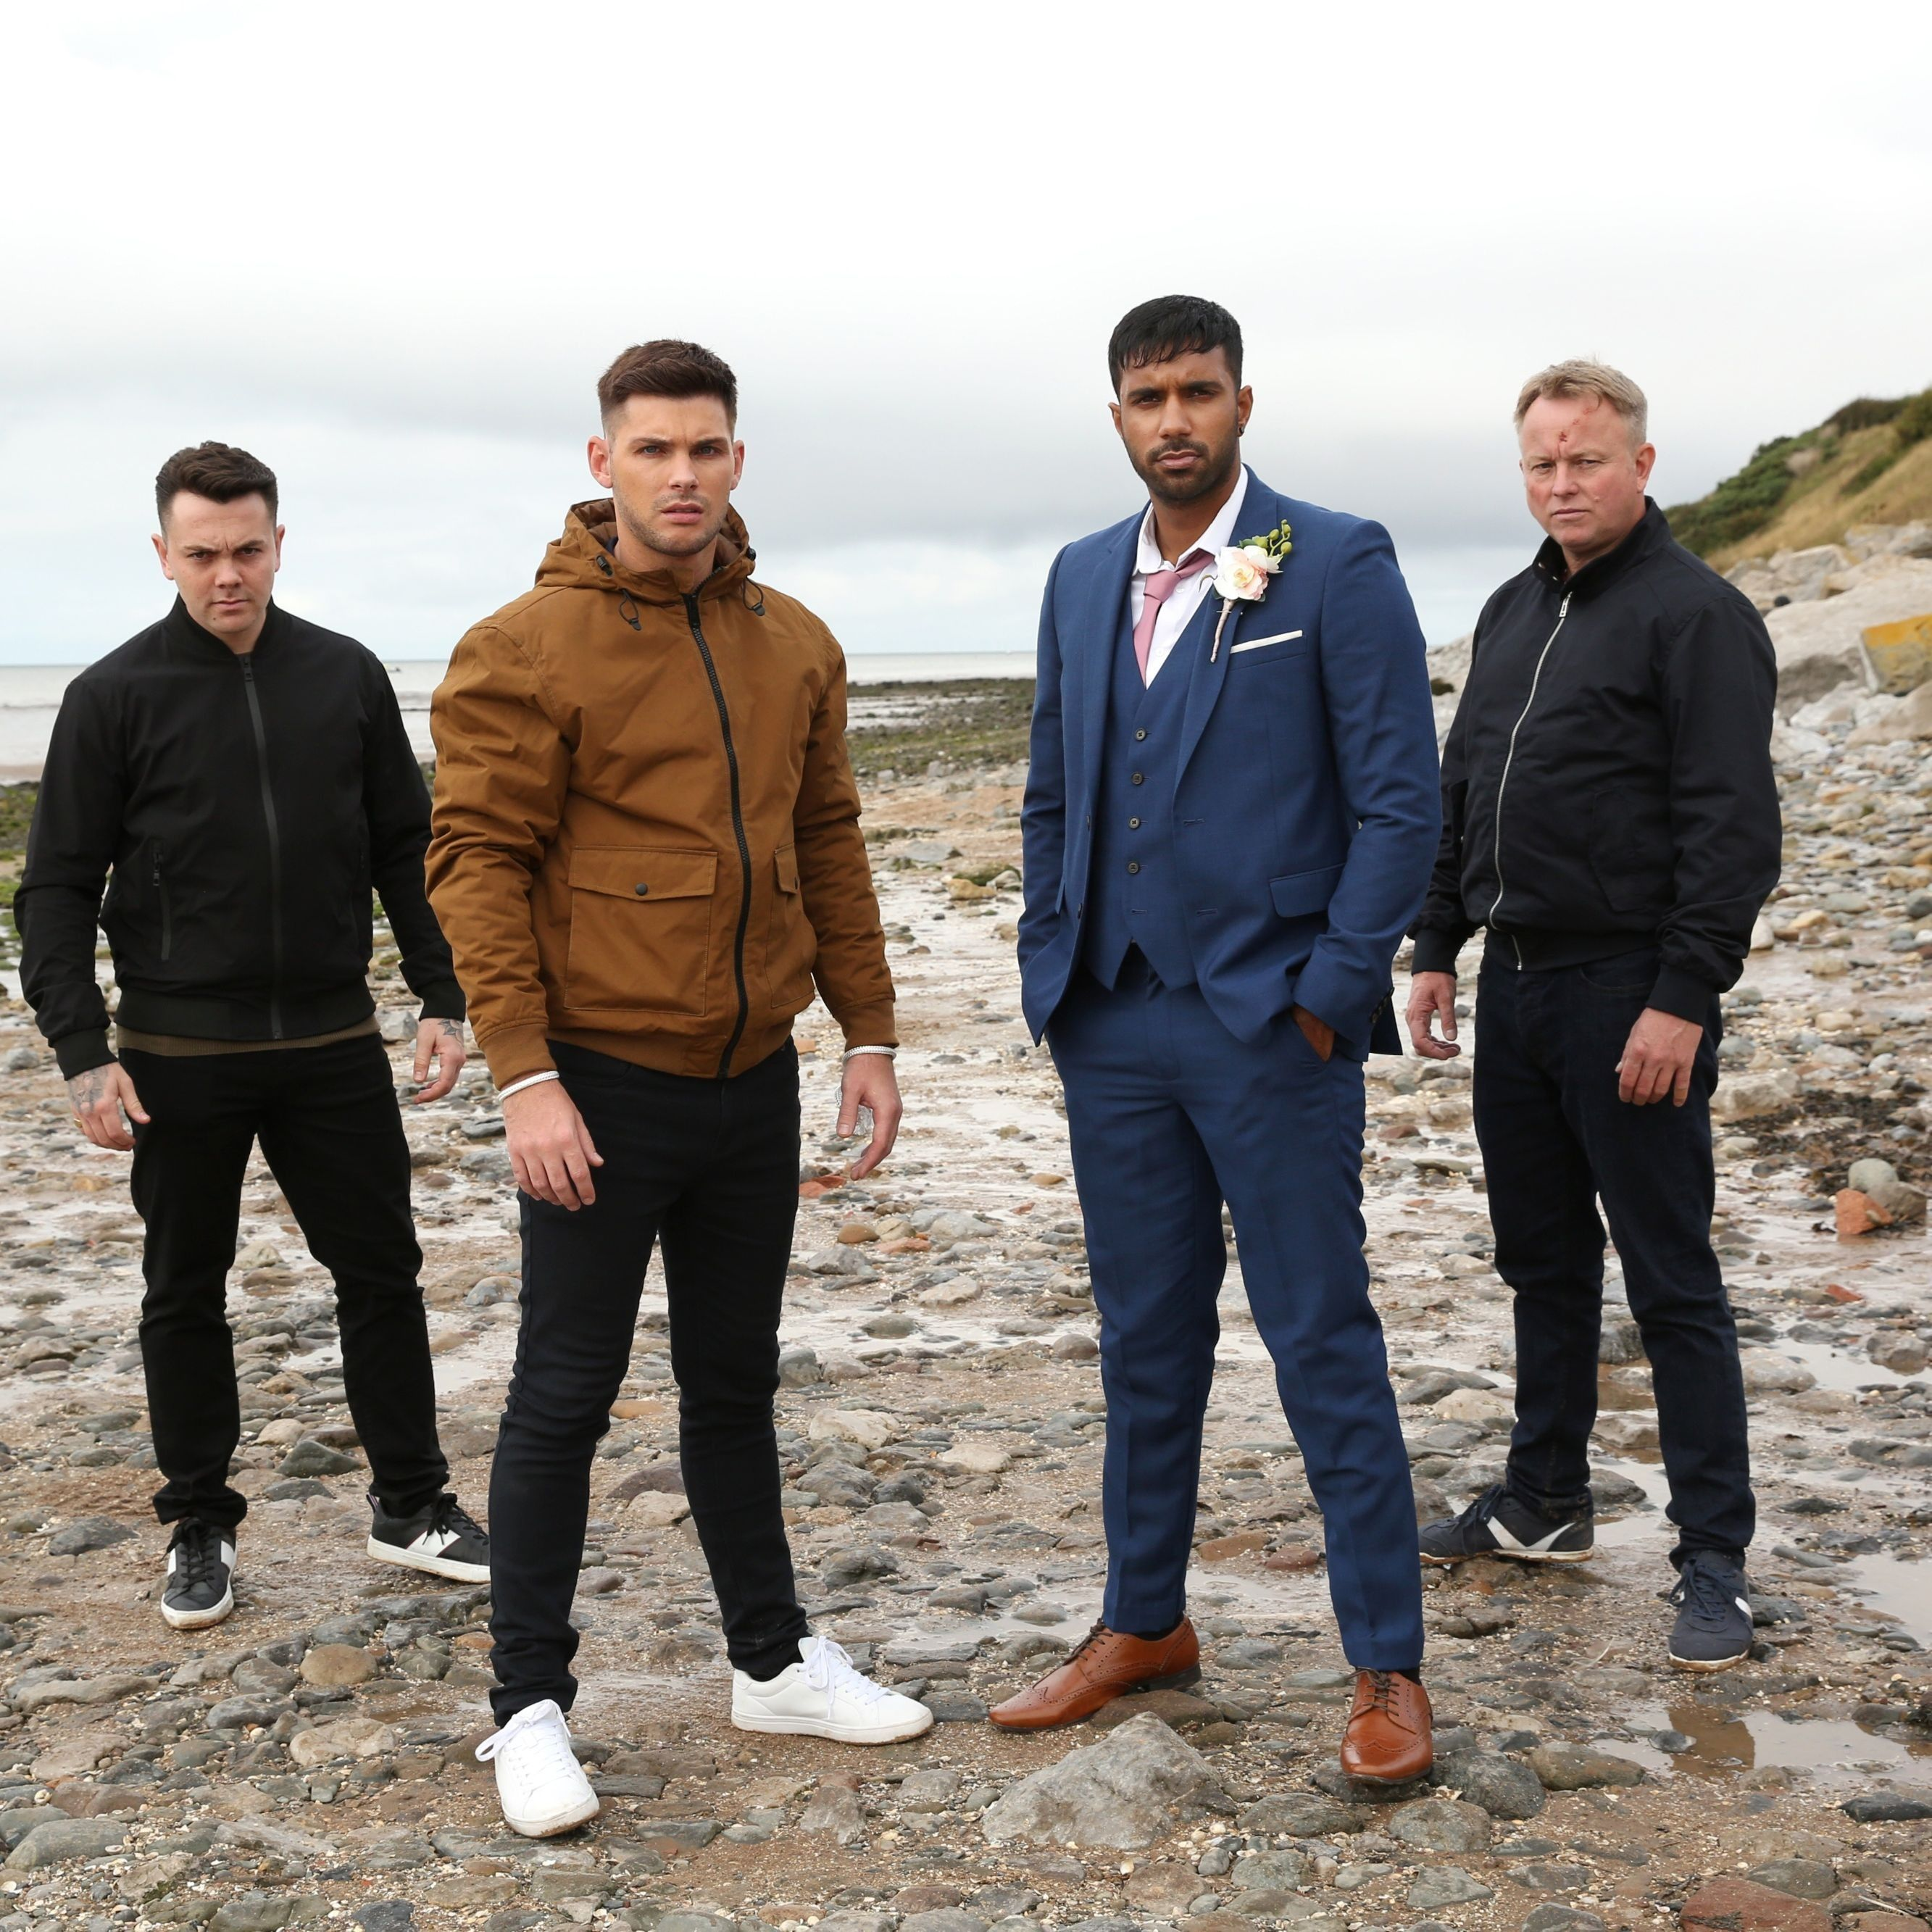 Hollyoaks confirms cast exits as dramatic clifftop scenes are revealed